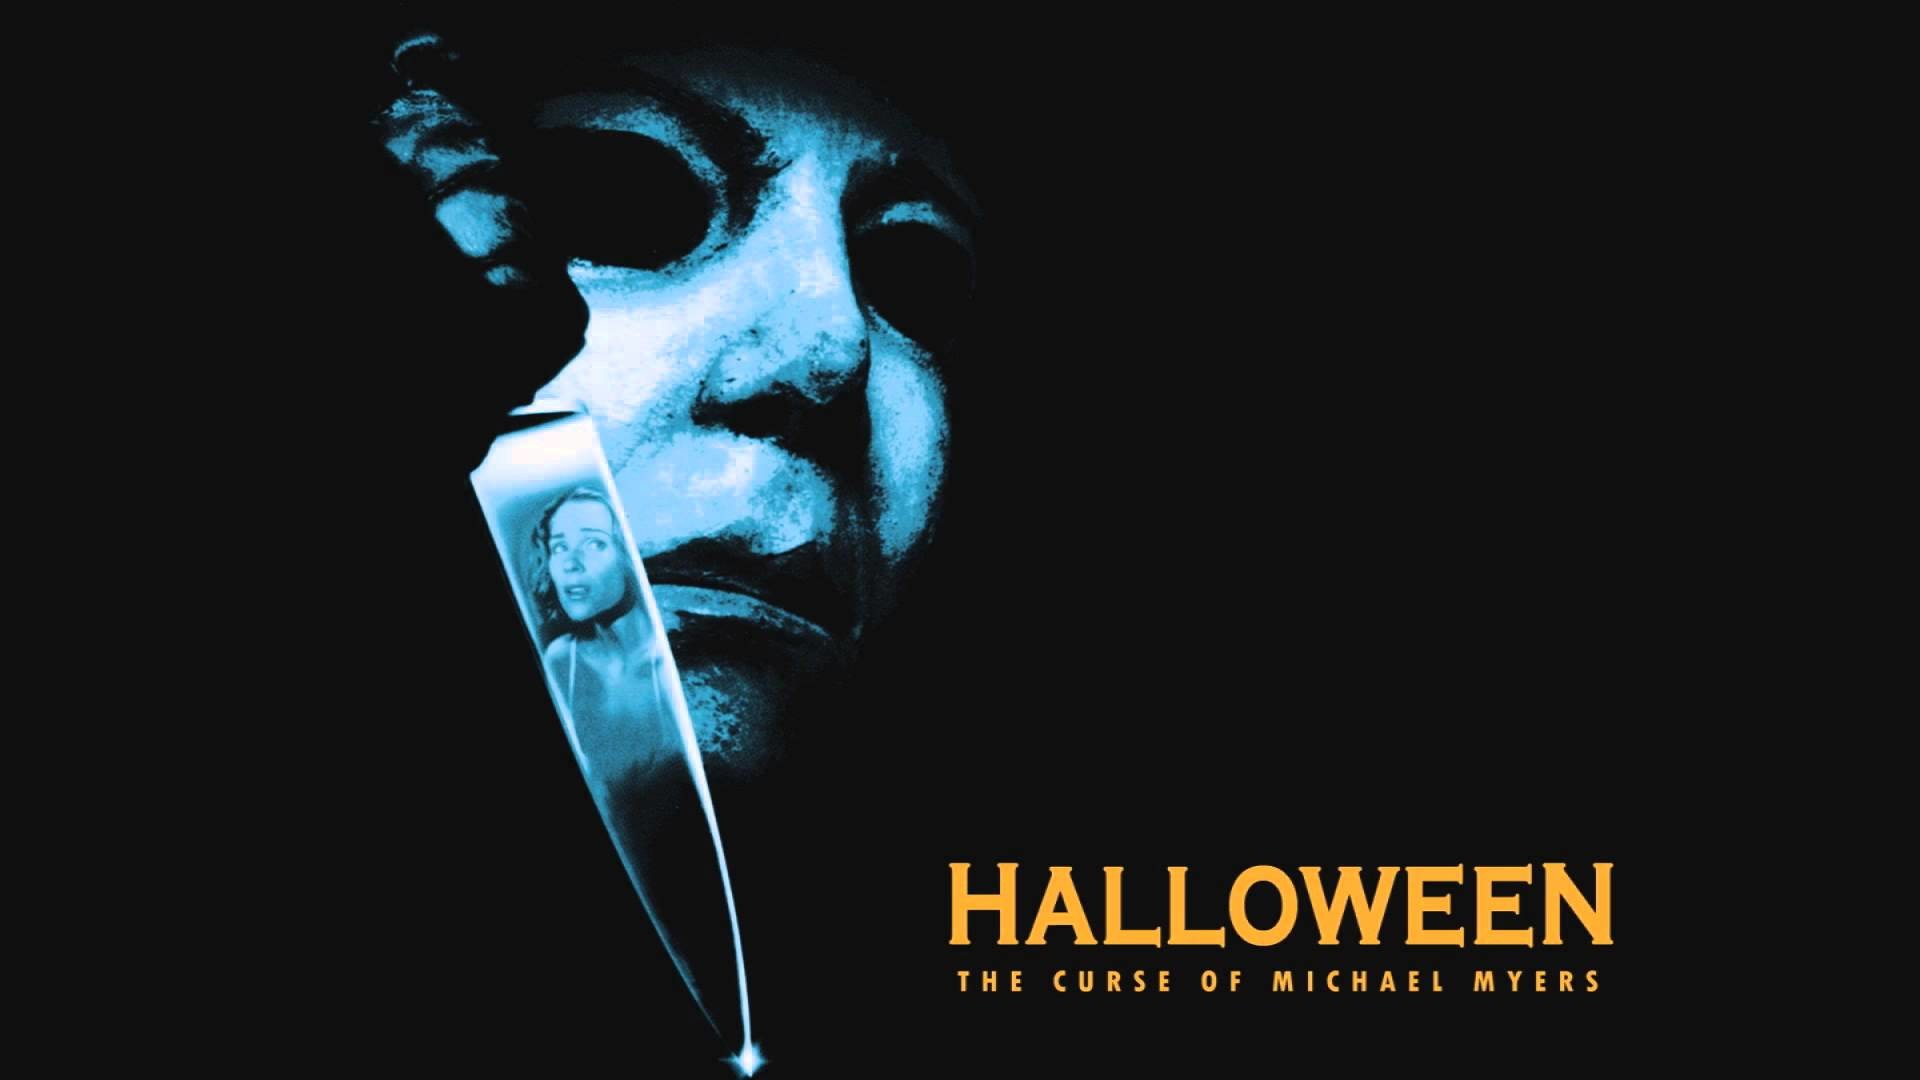 1920x1080 Halloween The Curse of Michael Myers Unreleased Music - The Shape Stalks  (Heavy Metal Version) - YouTube